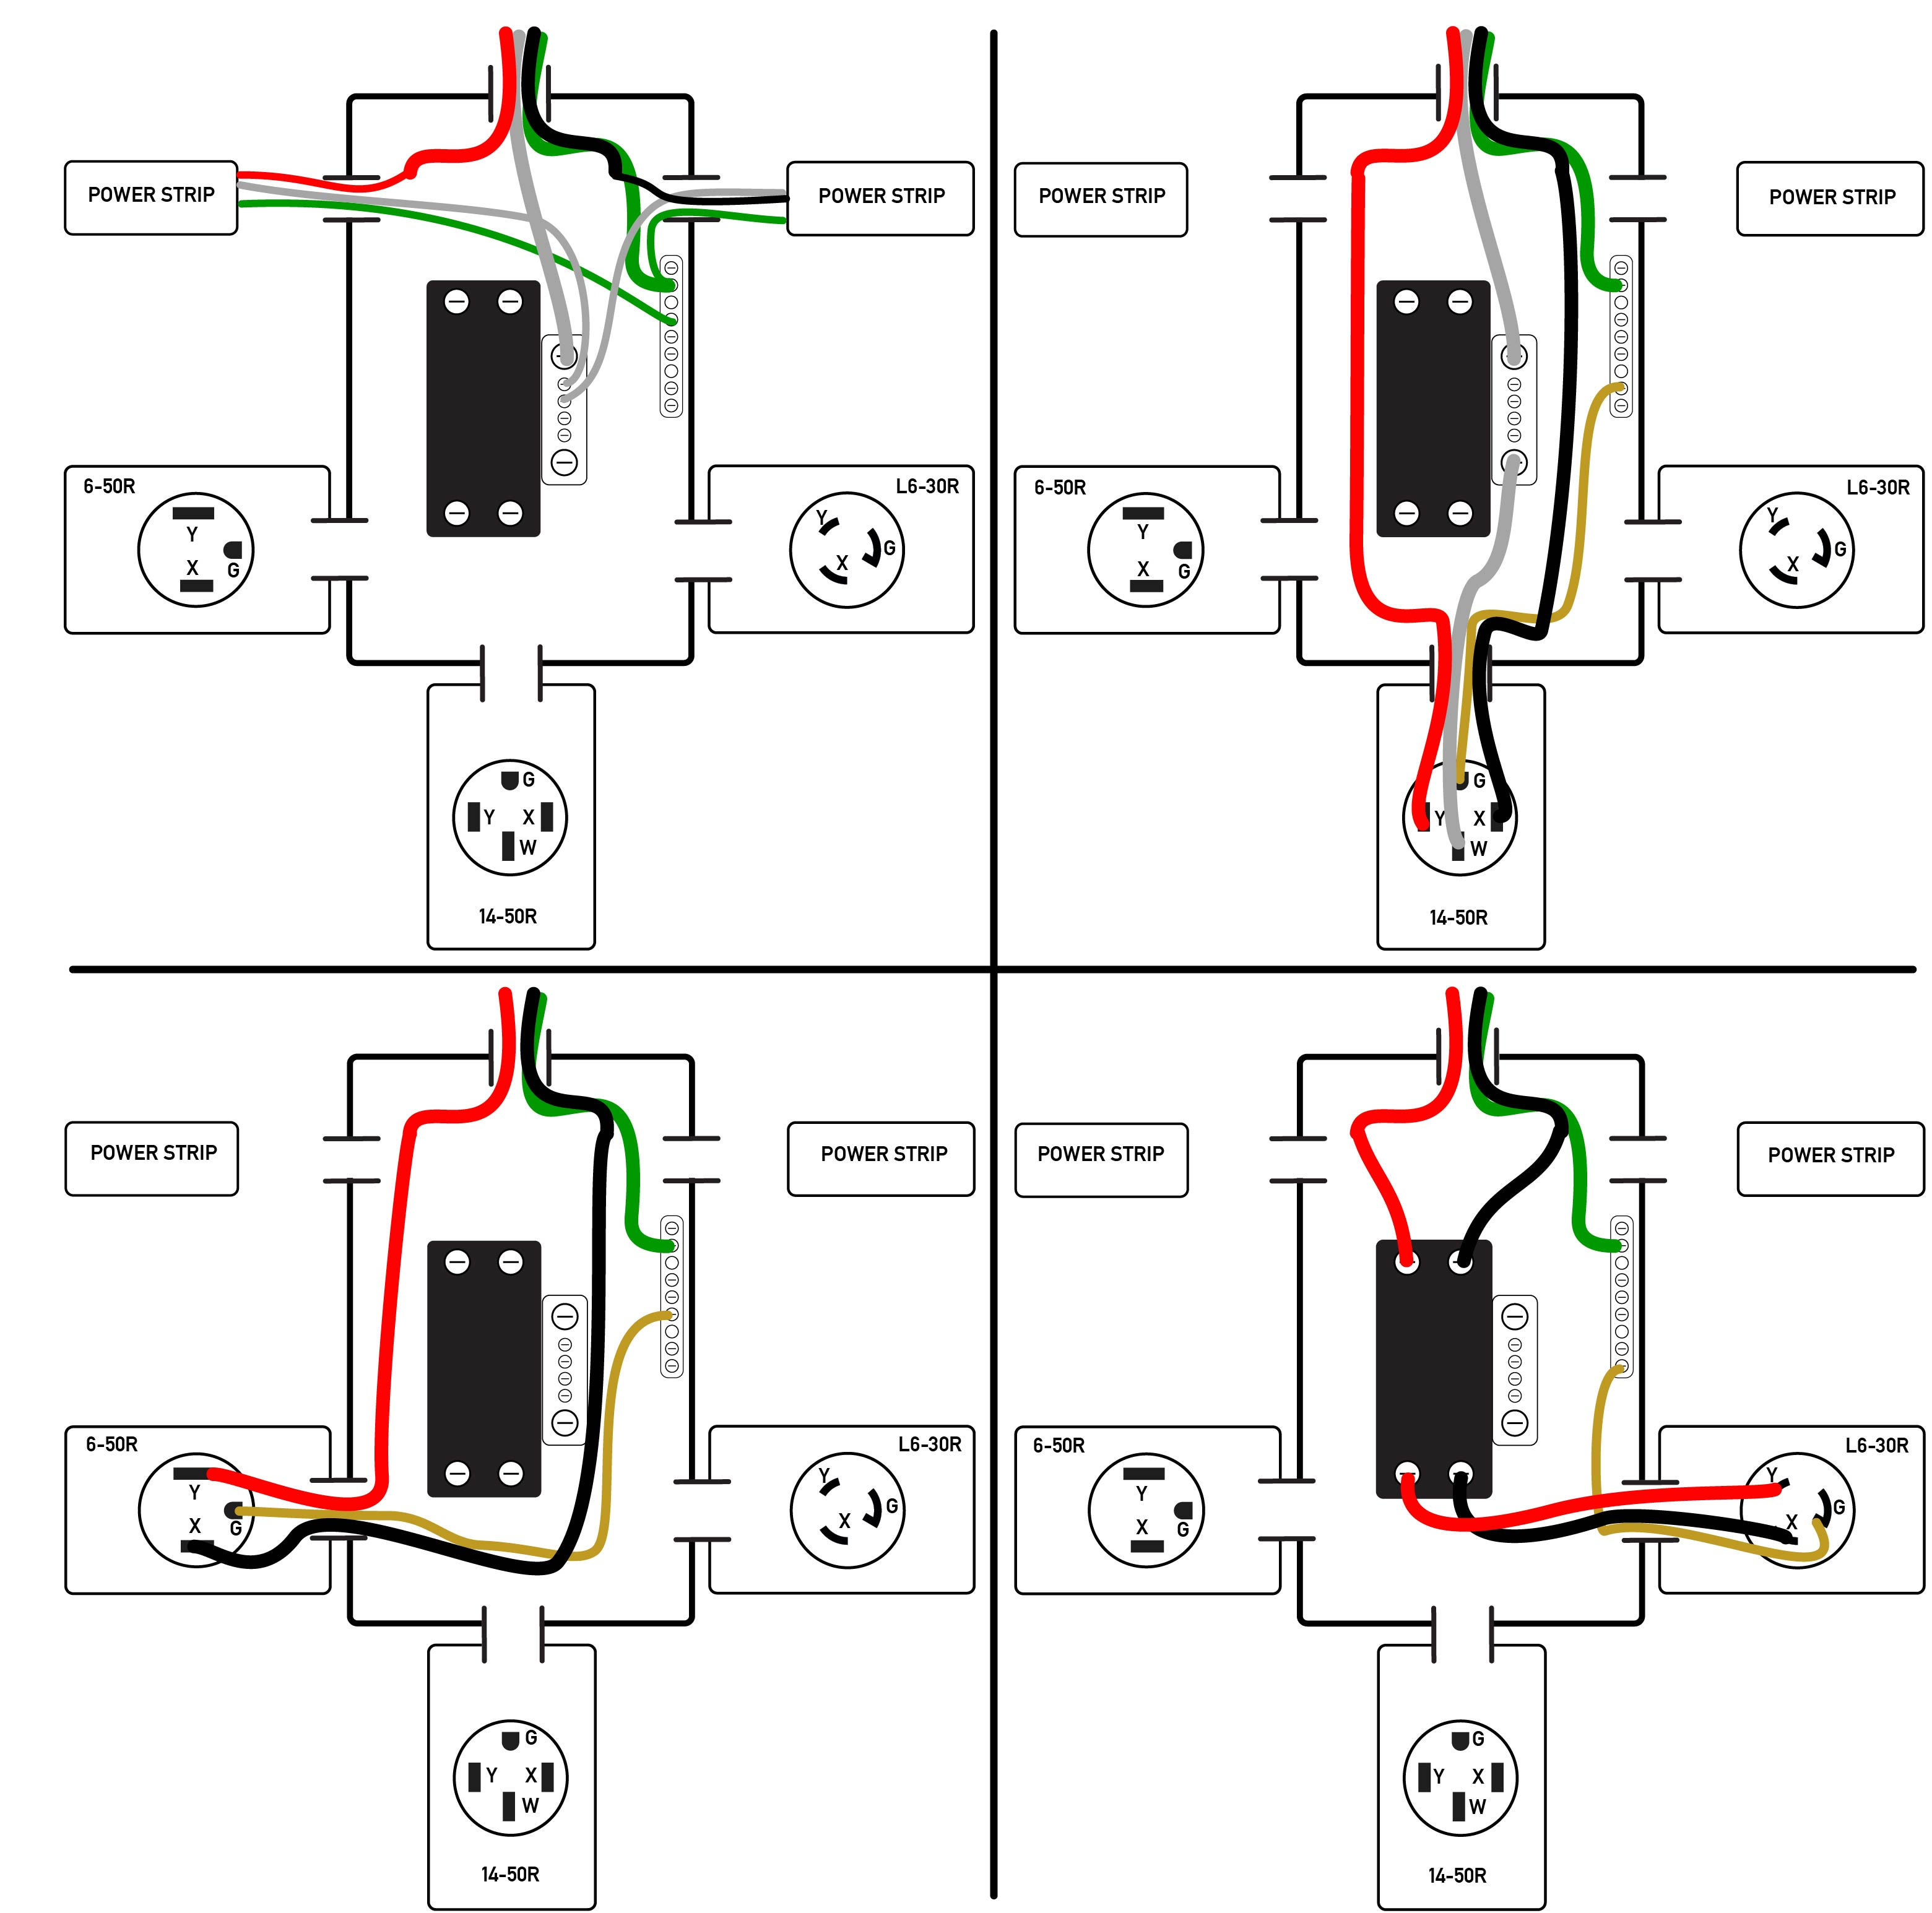 electrical outlet wiring diagram attwood sahara s500 power strip 26 images